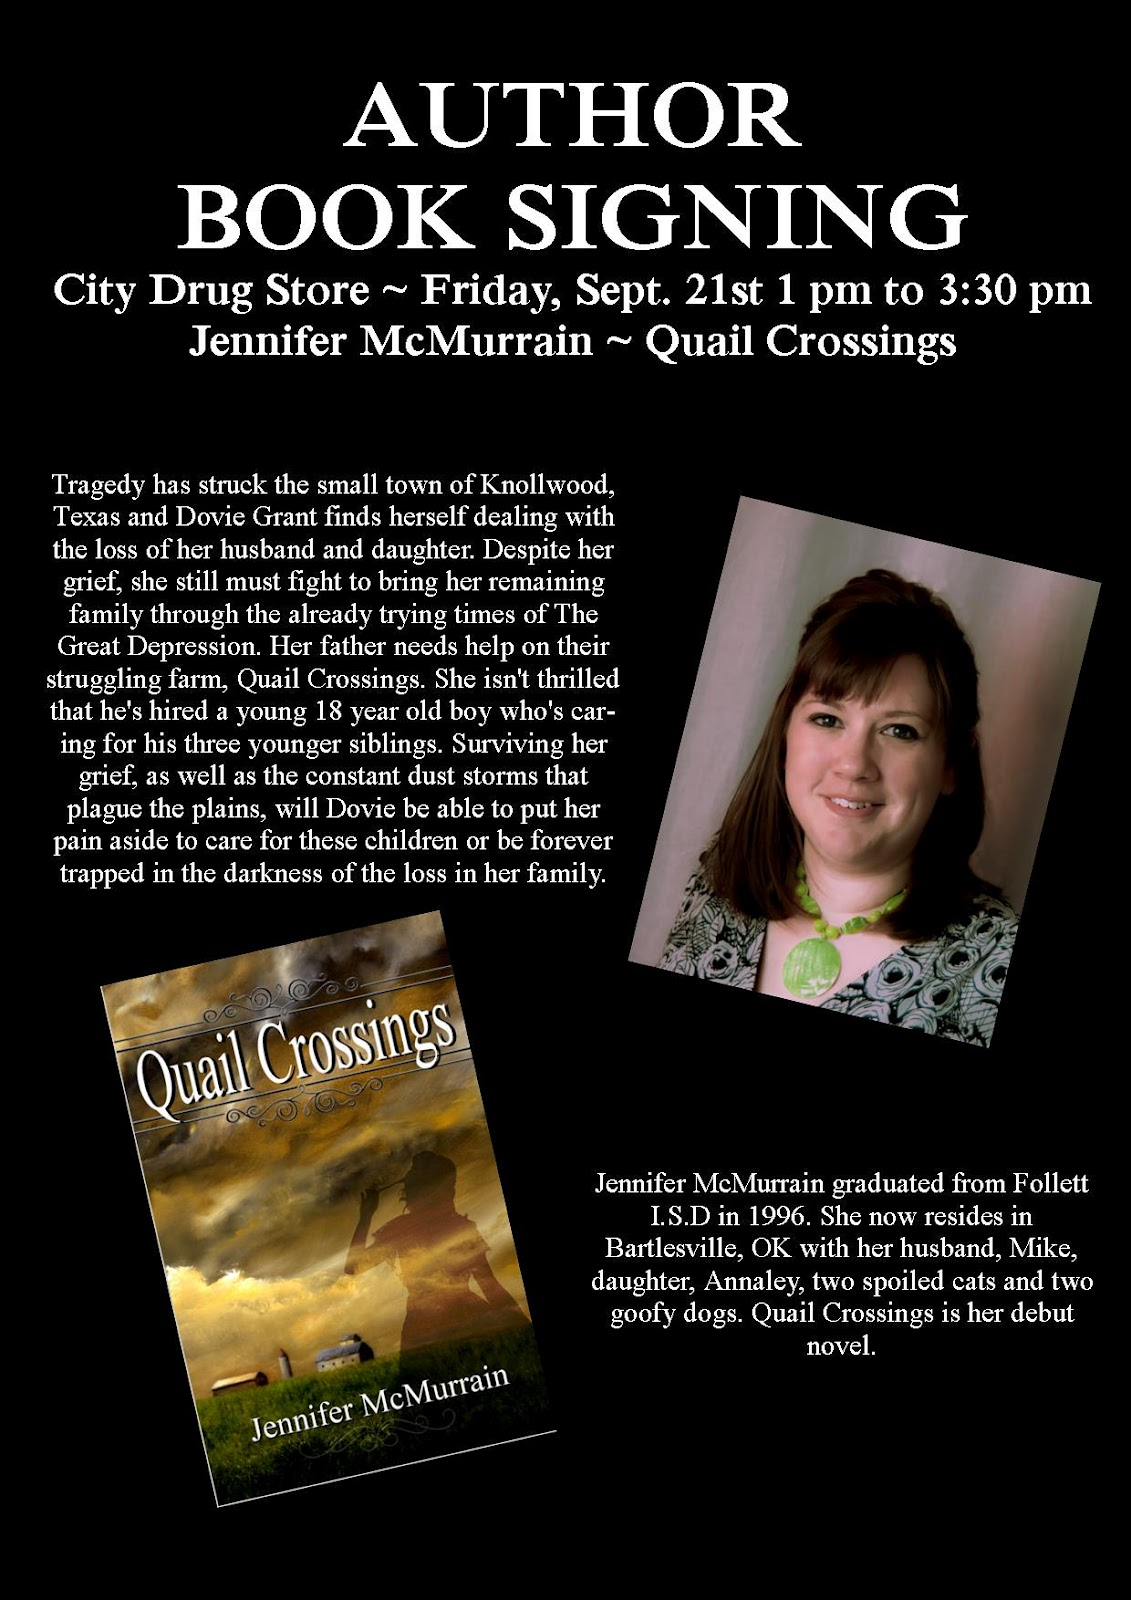 book signing poster template jennifer mcmurrain book signing follett tx